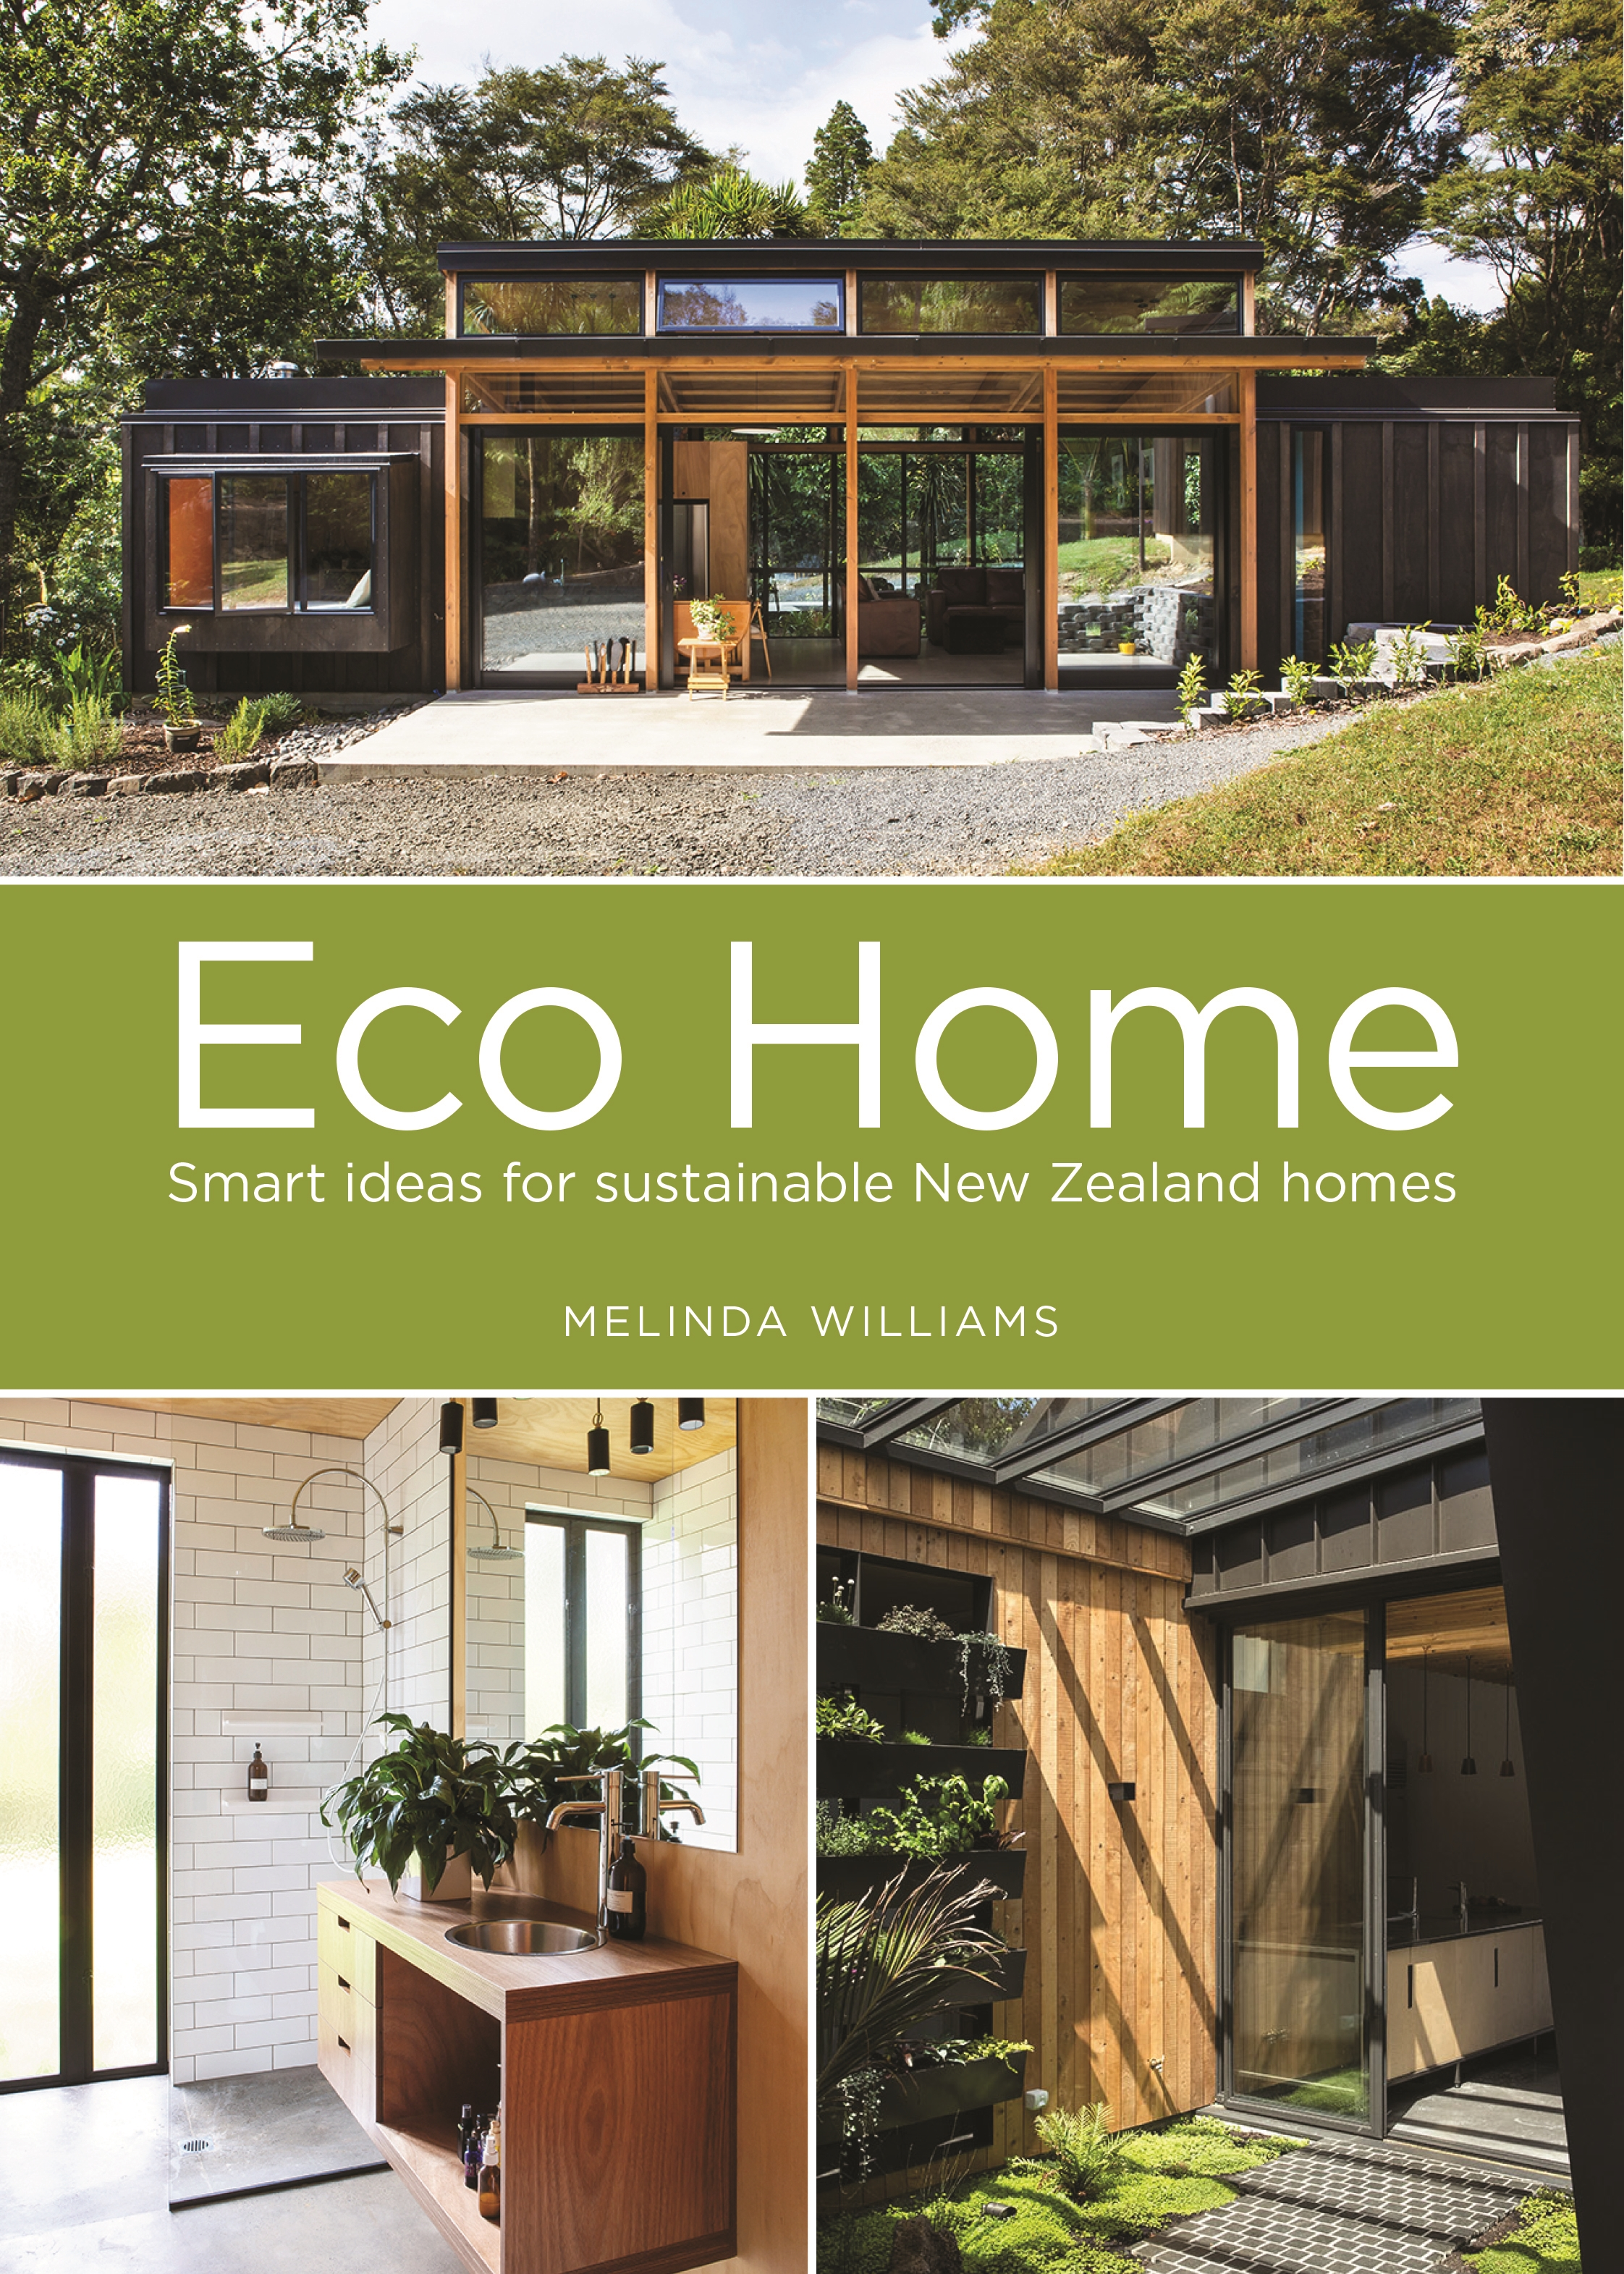 Eco Home by Melinda Williams - Penguin Books New Zealand Eco House Plans Nz on house plans la, house plans india, house plans lk, house plans fr, house plans cat, house plans uk, house plans mn, house plans european, house plans ireland, house plans id,